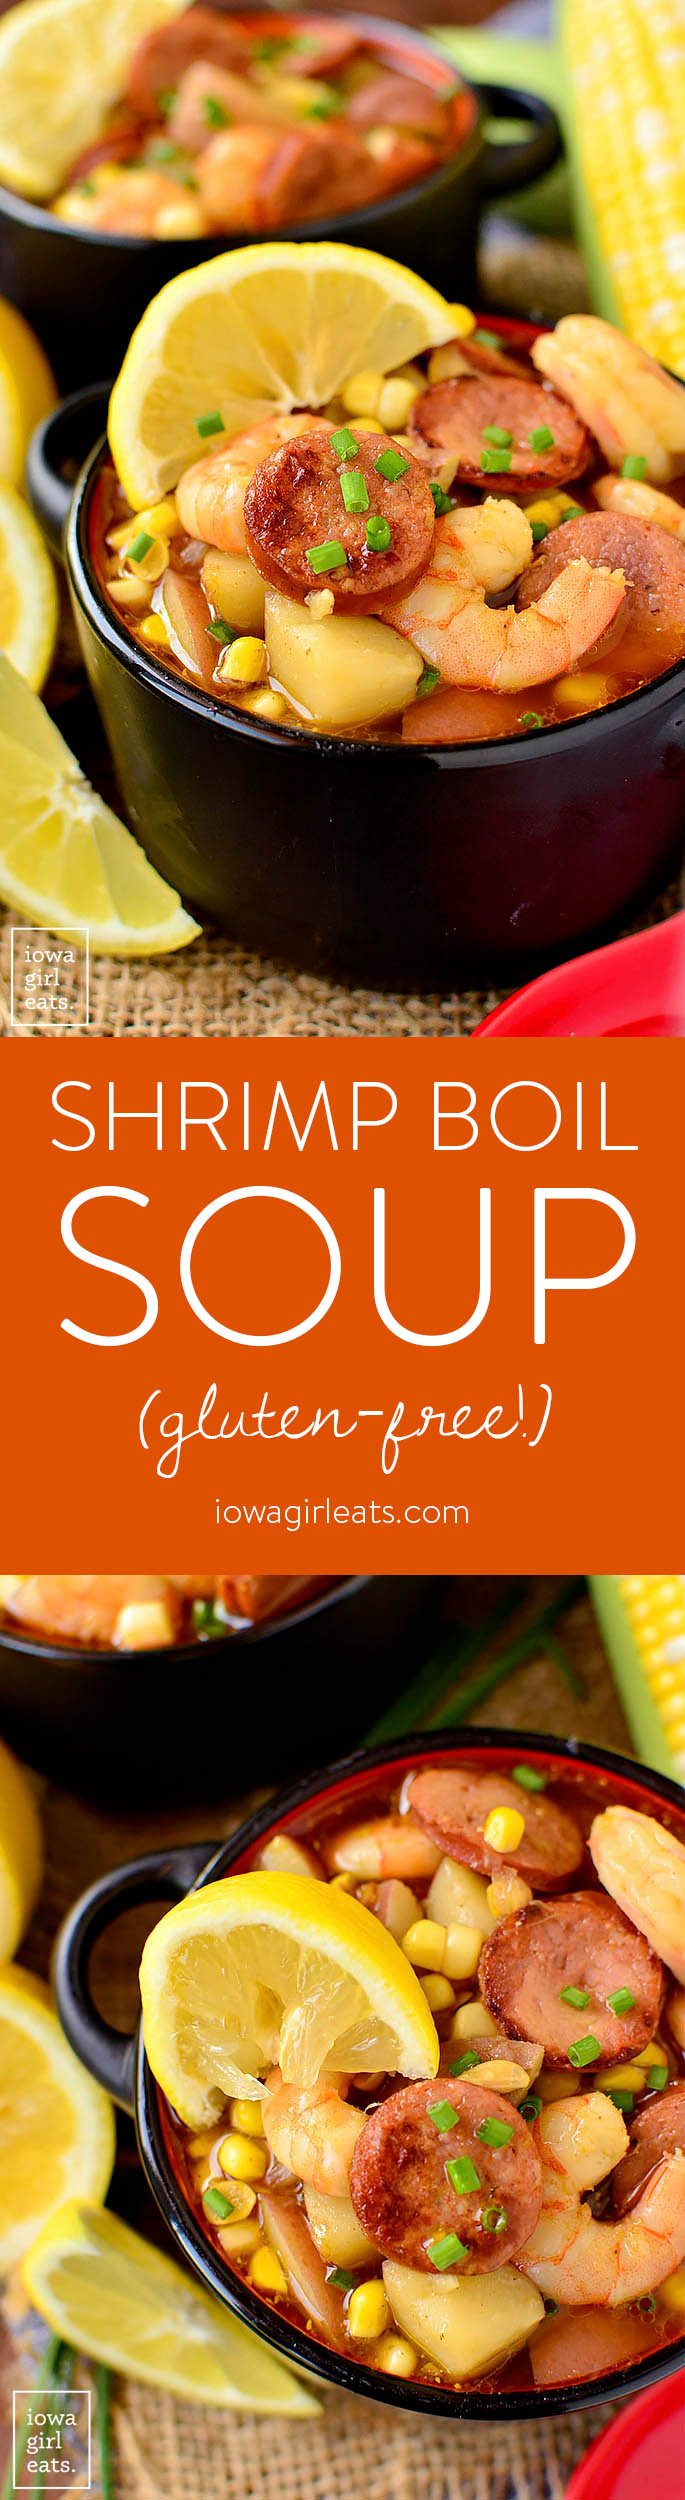 Shrimp Boil Soup has all the flavor of a low-country boil but is made right on the stove top. This quick cooking, gluten-free soup recipe is spicy, savory, and so satisfying.   iowagirleats.com